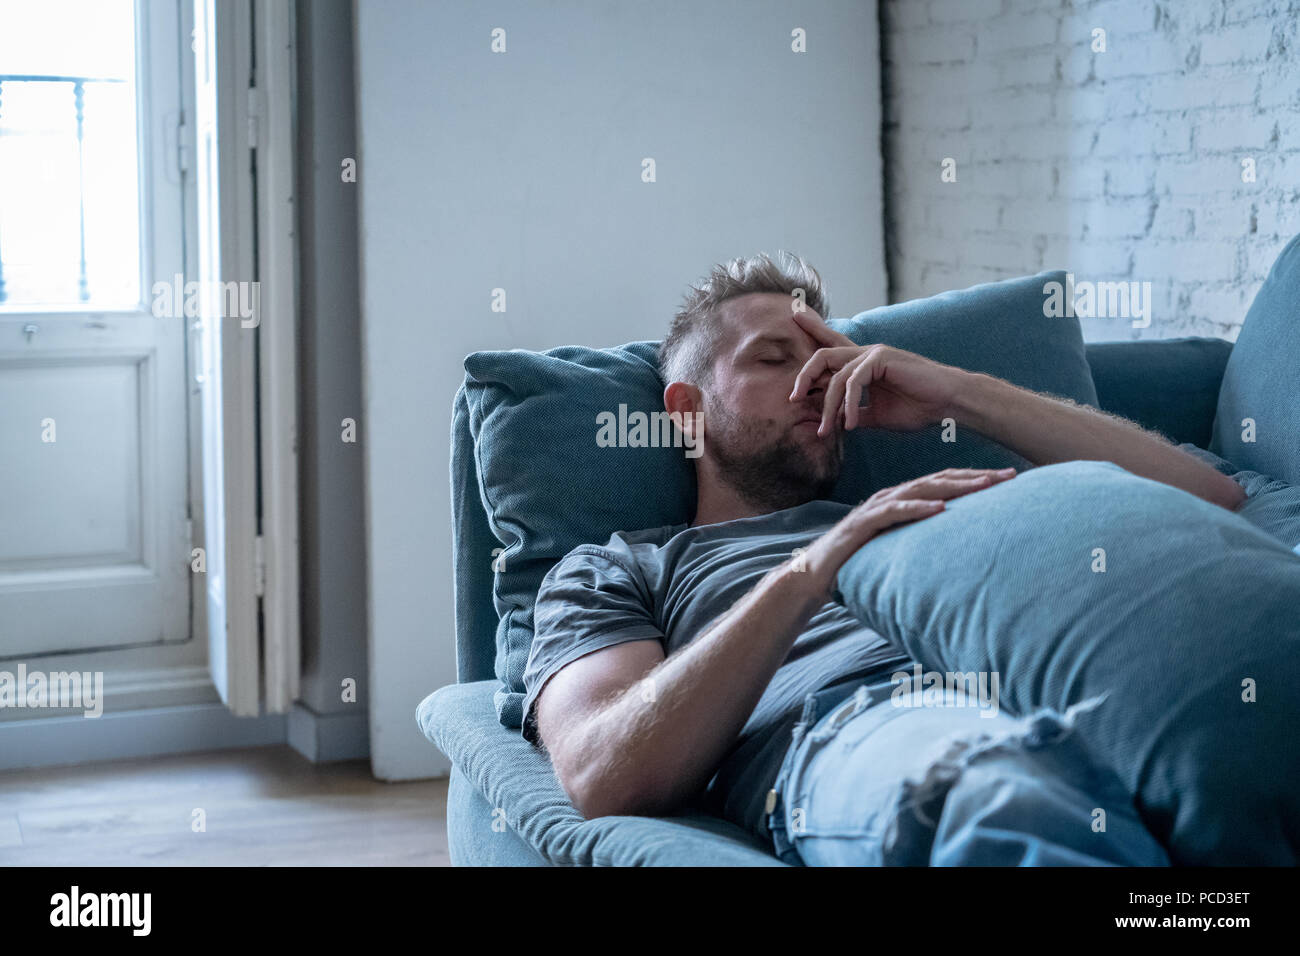 Unhappy depressed caucasian male sitting and lying in living room couch feeling desperate a lonely. In stressed from work, anxiety, heartbroken and de - Stock Image